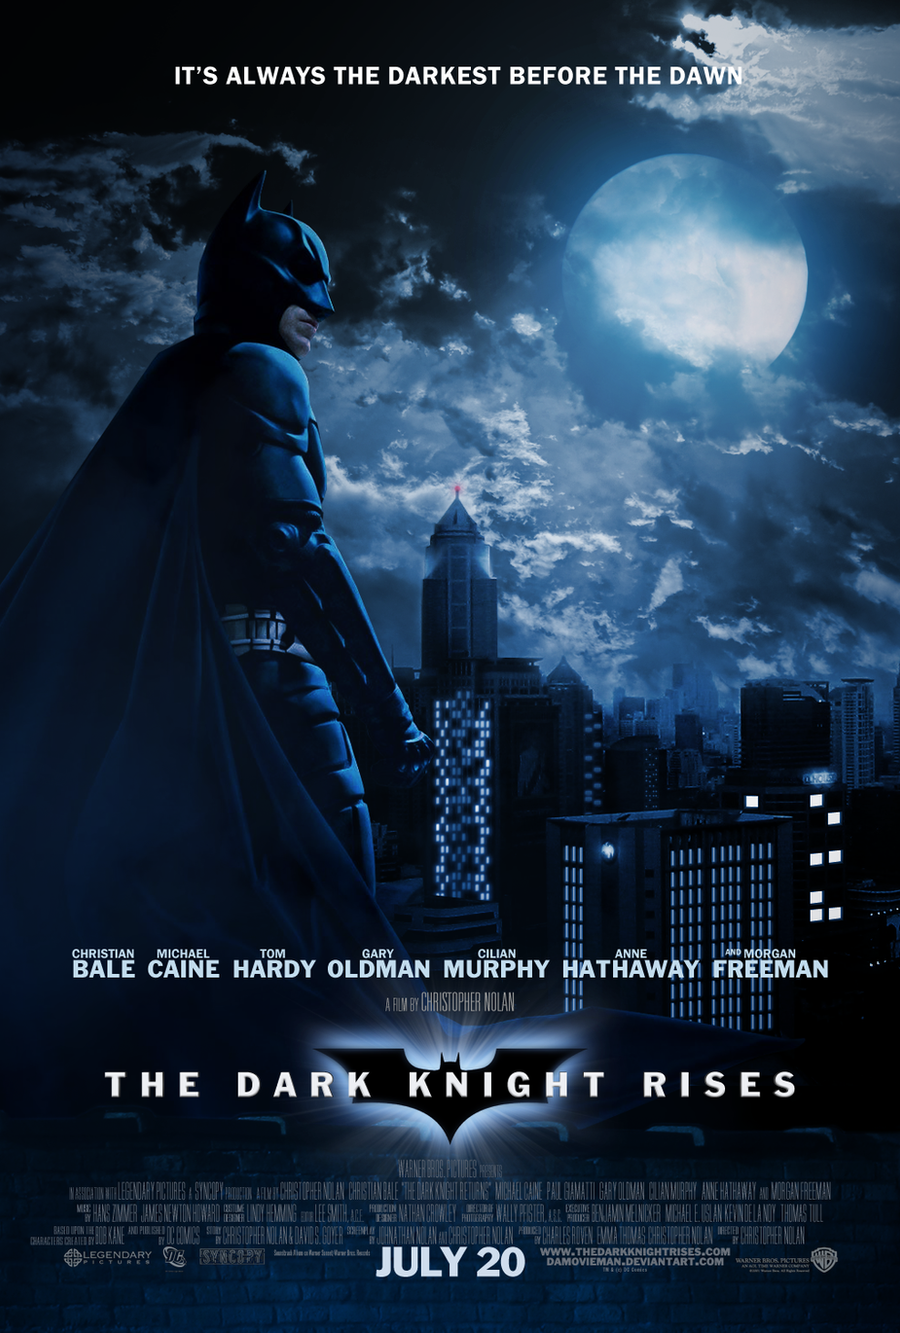 The Dark Knight Rises - Poster by NewRandombell